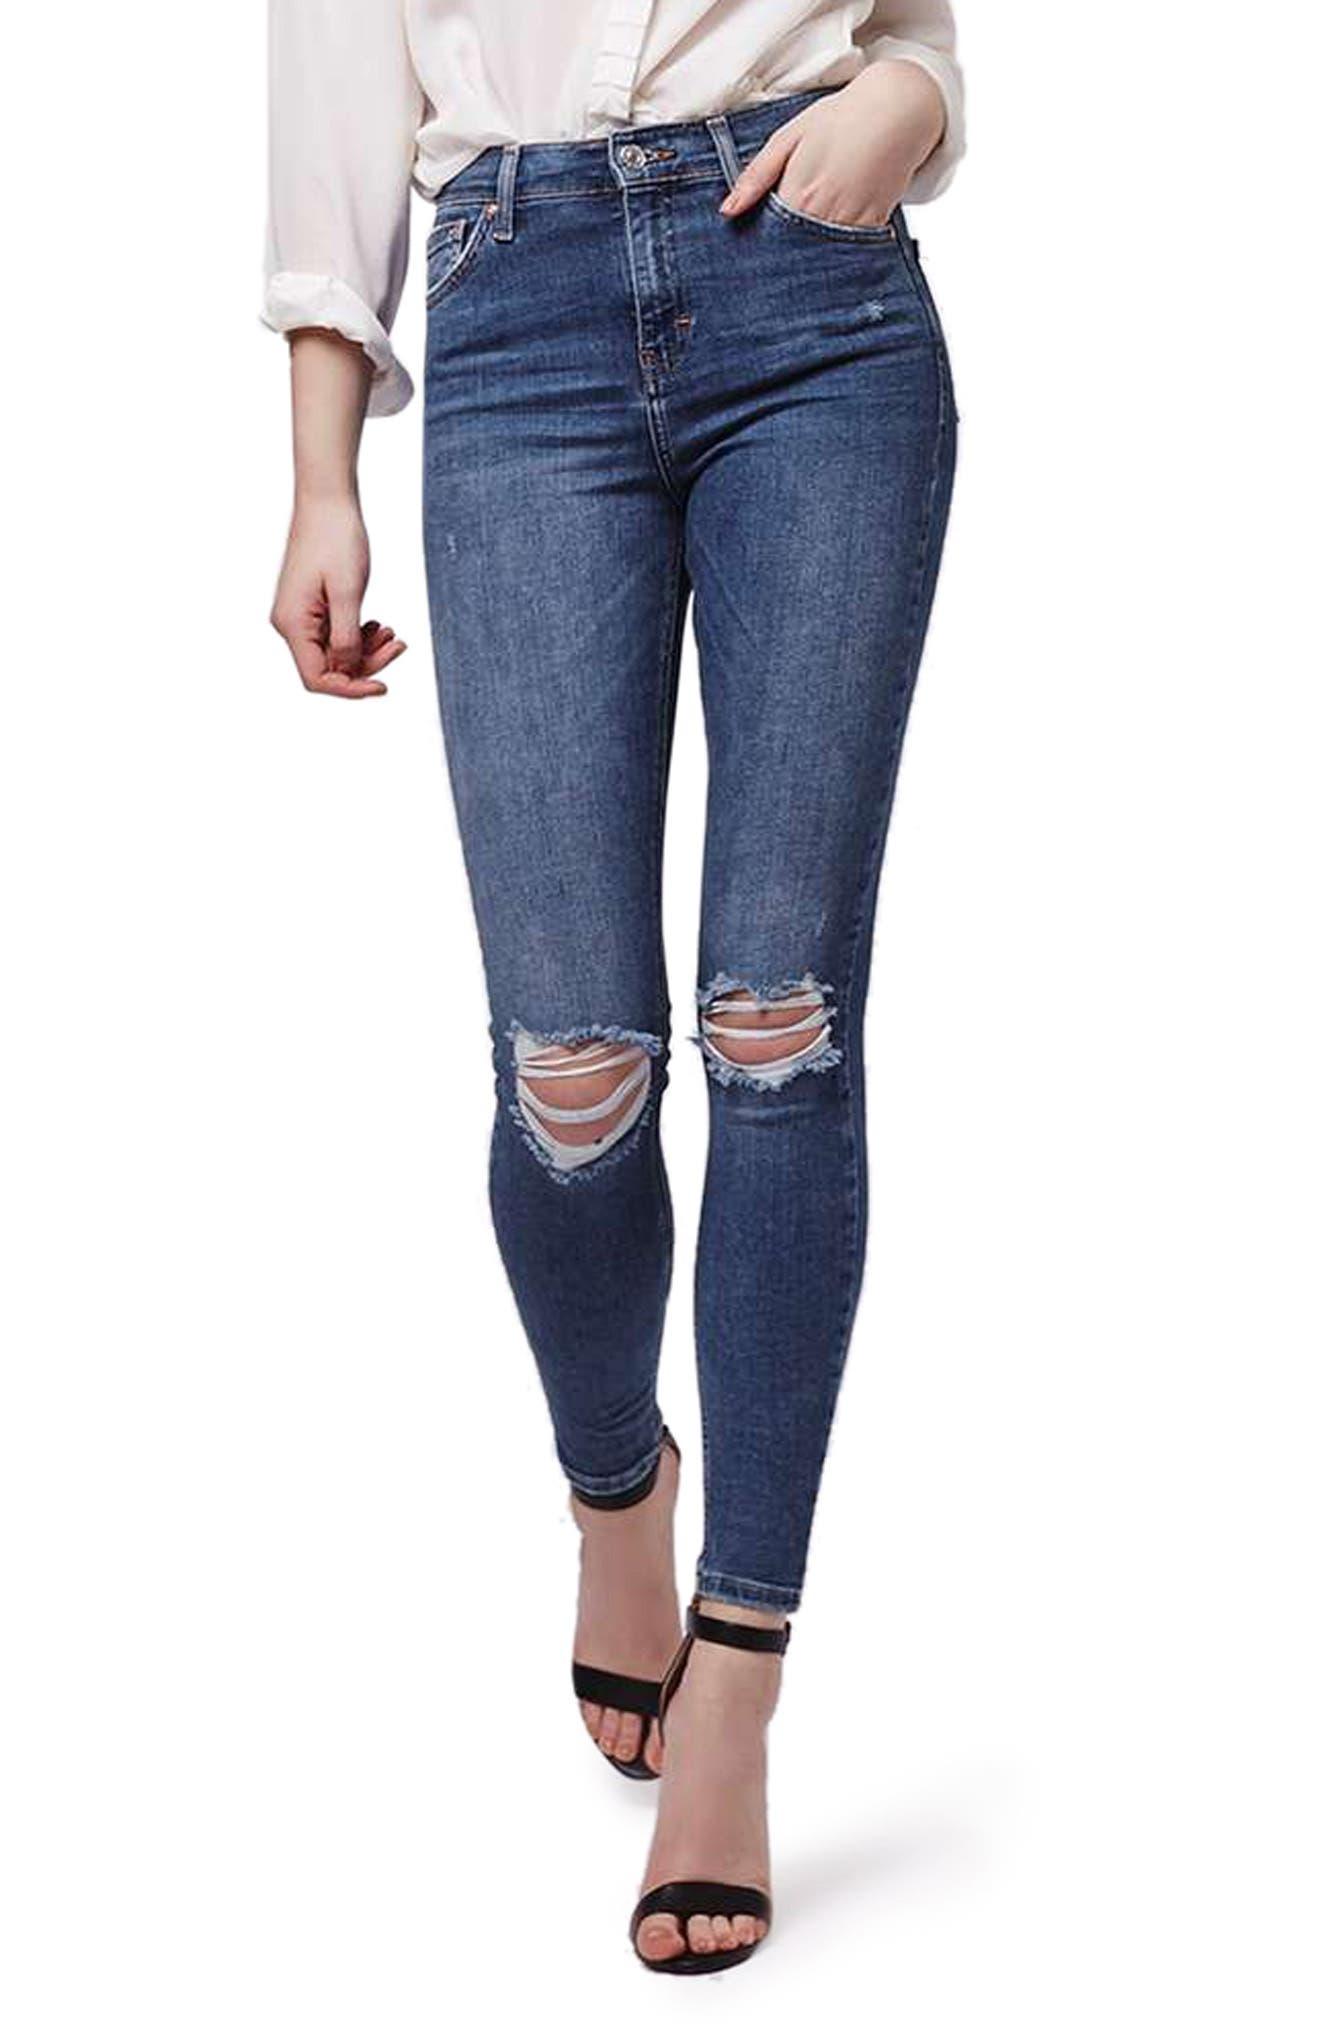 Jamie Rip High Waist Skinny Jeans,                             Main thumbnail 1, color,                             420